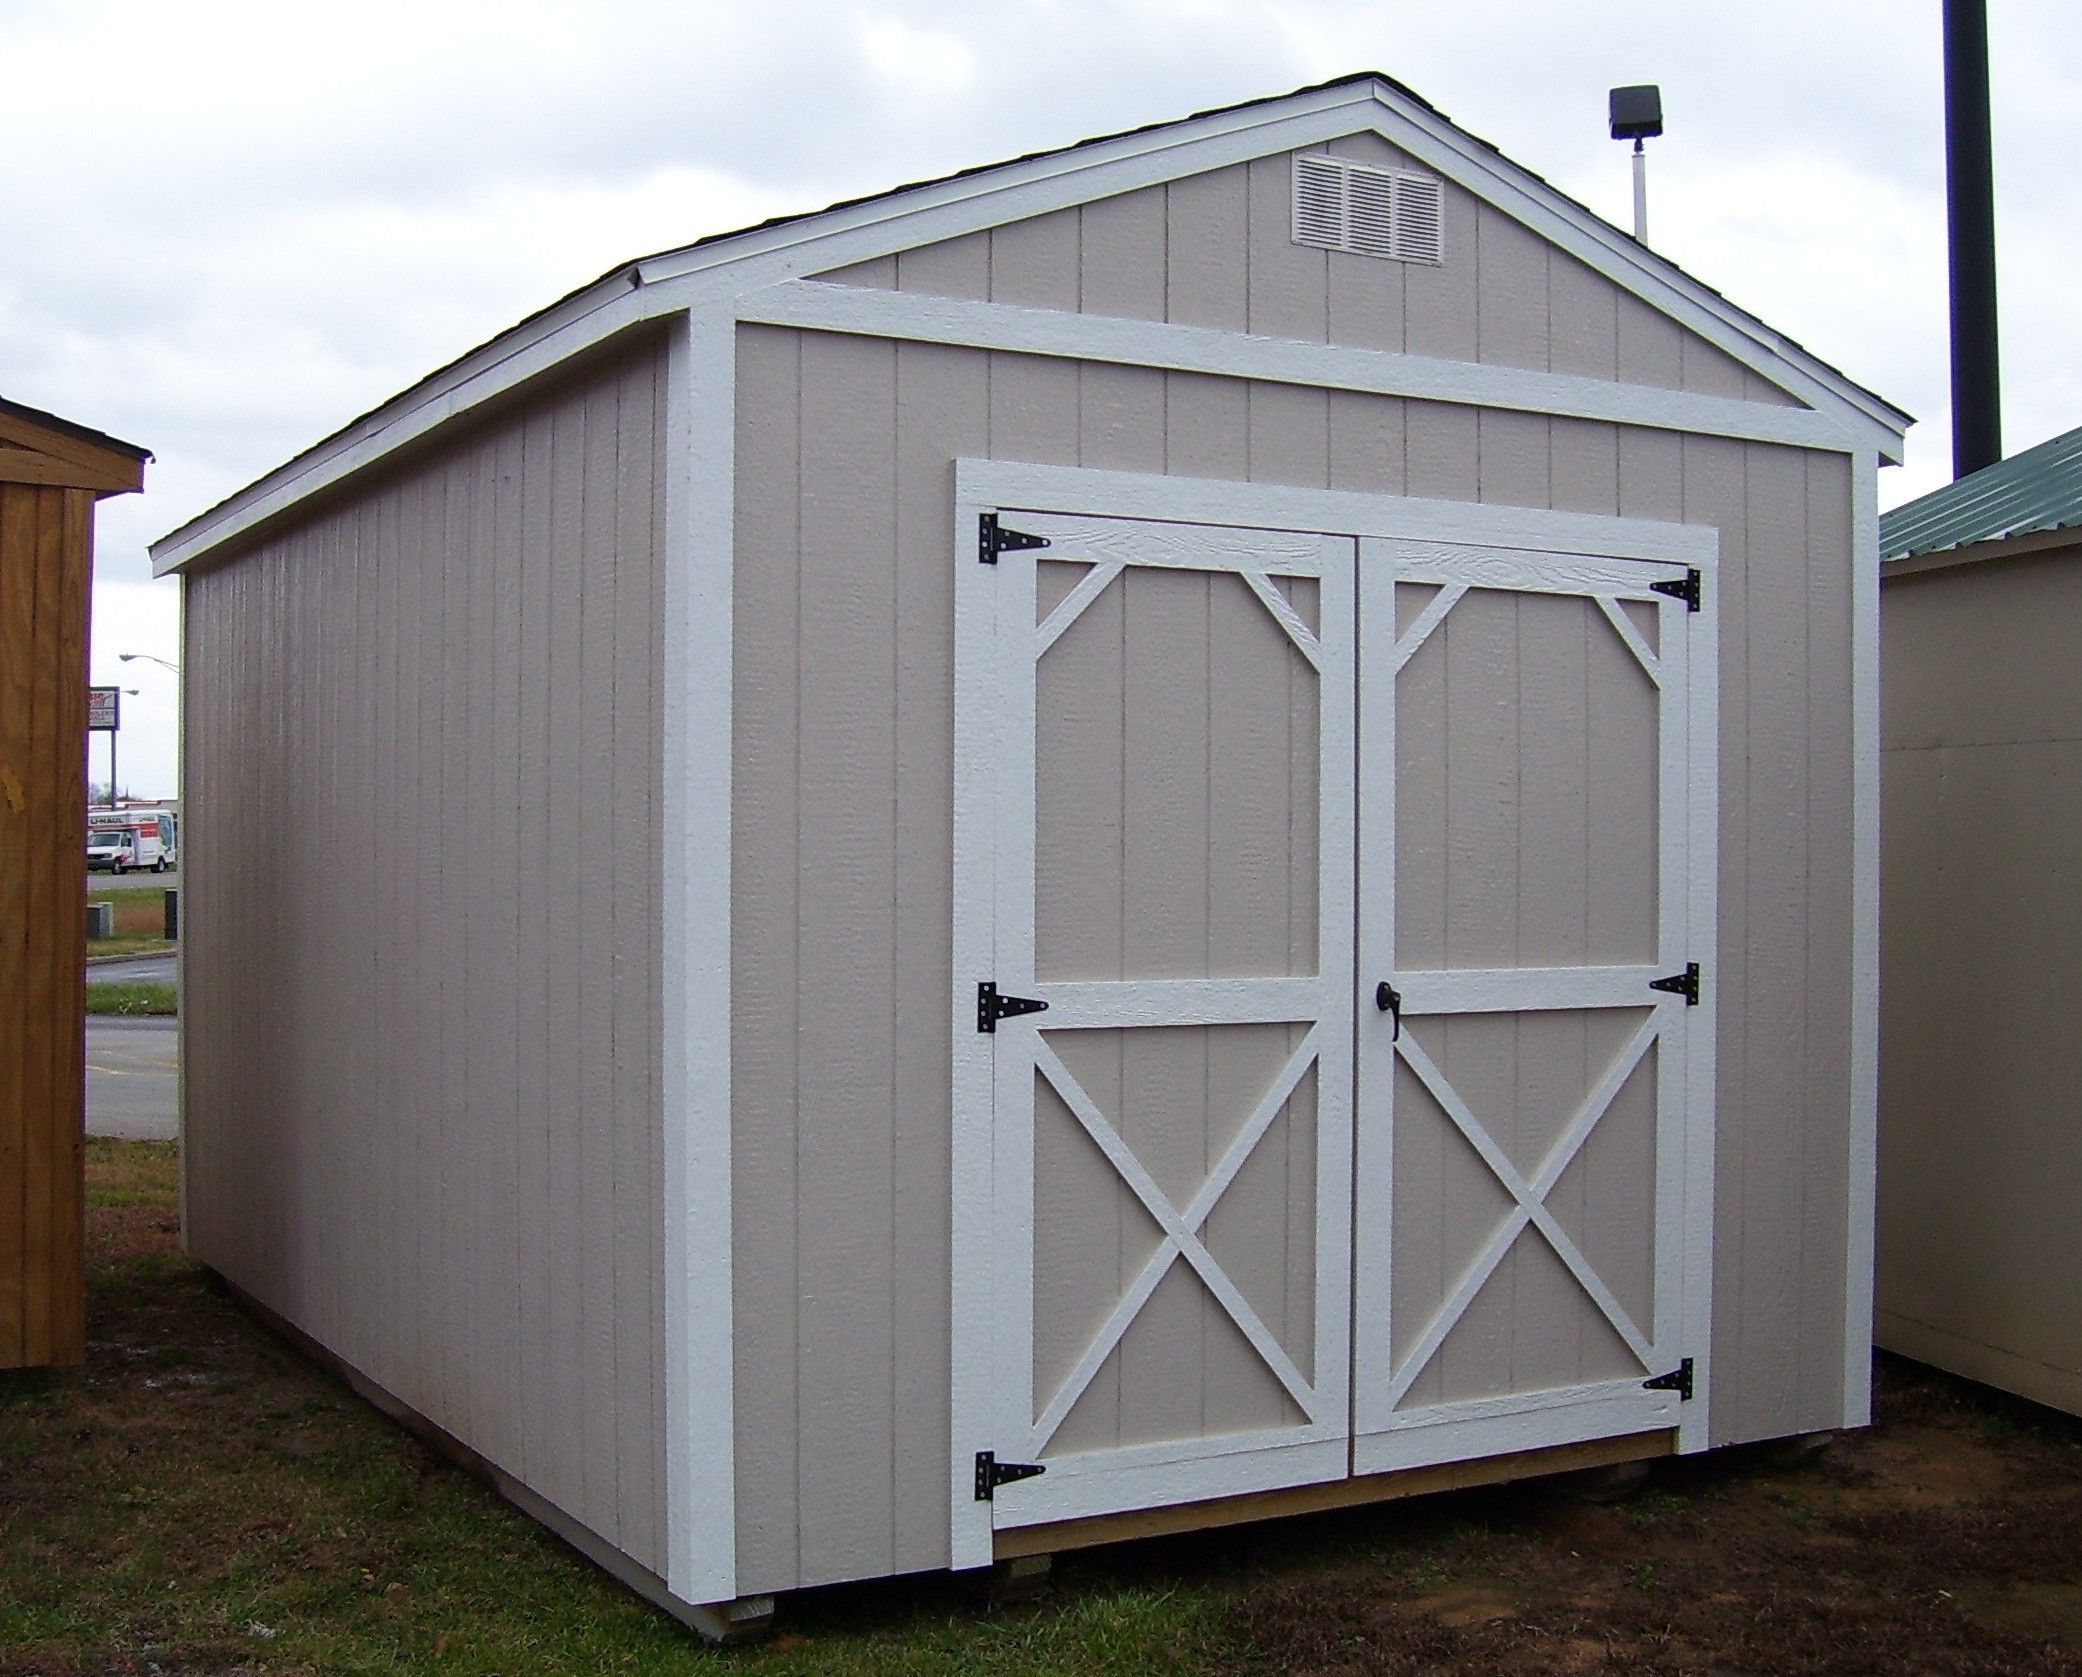 Utility Sheds | the painted wood utility from dura built would look great in . & Utility Sheds | the painted wood utility from dura built would ...